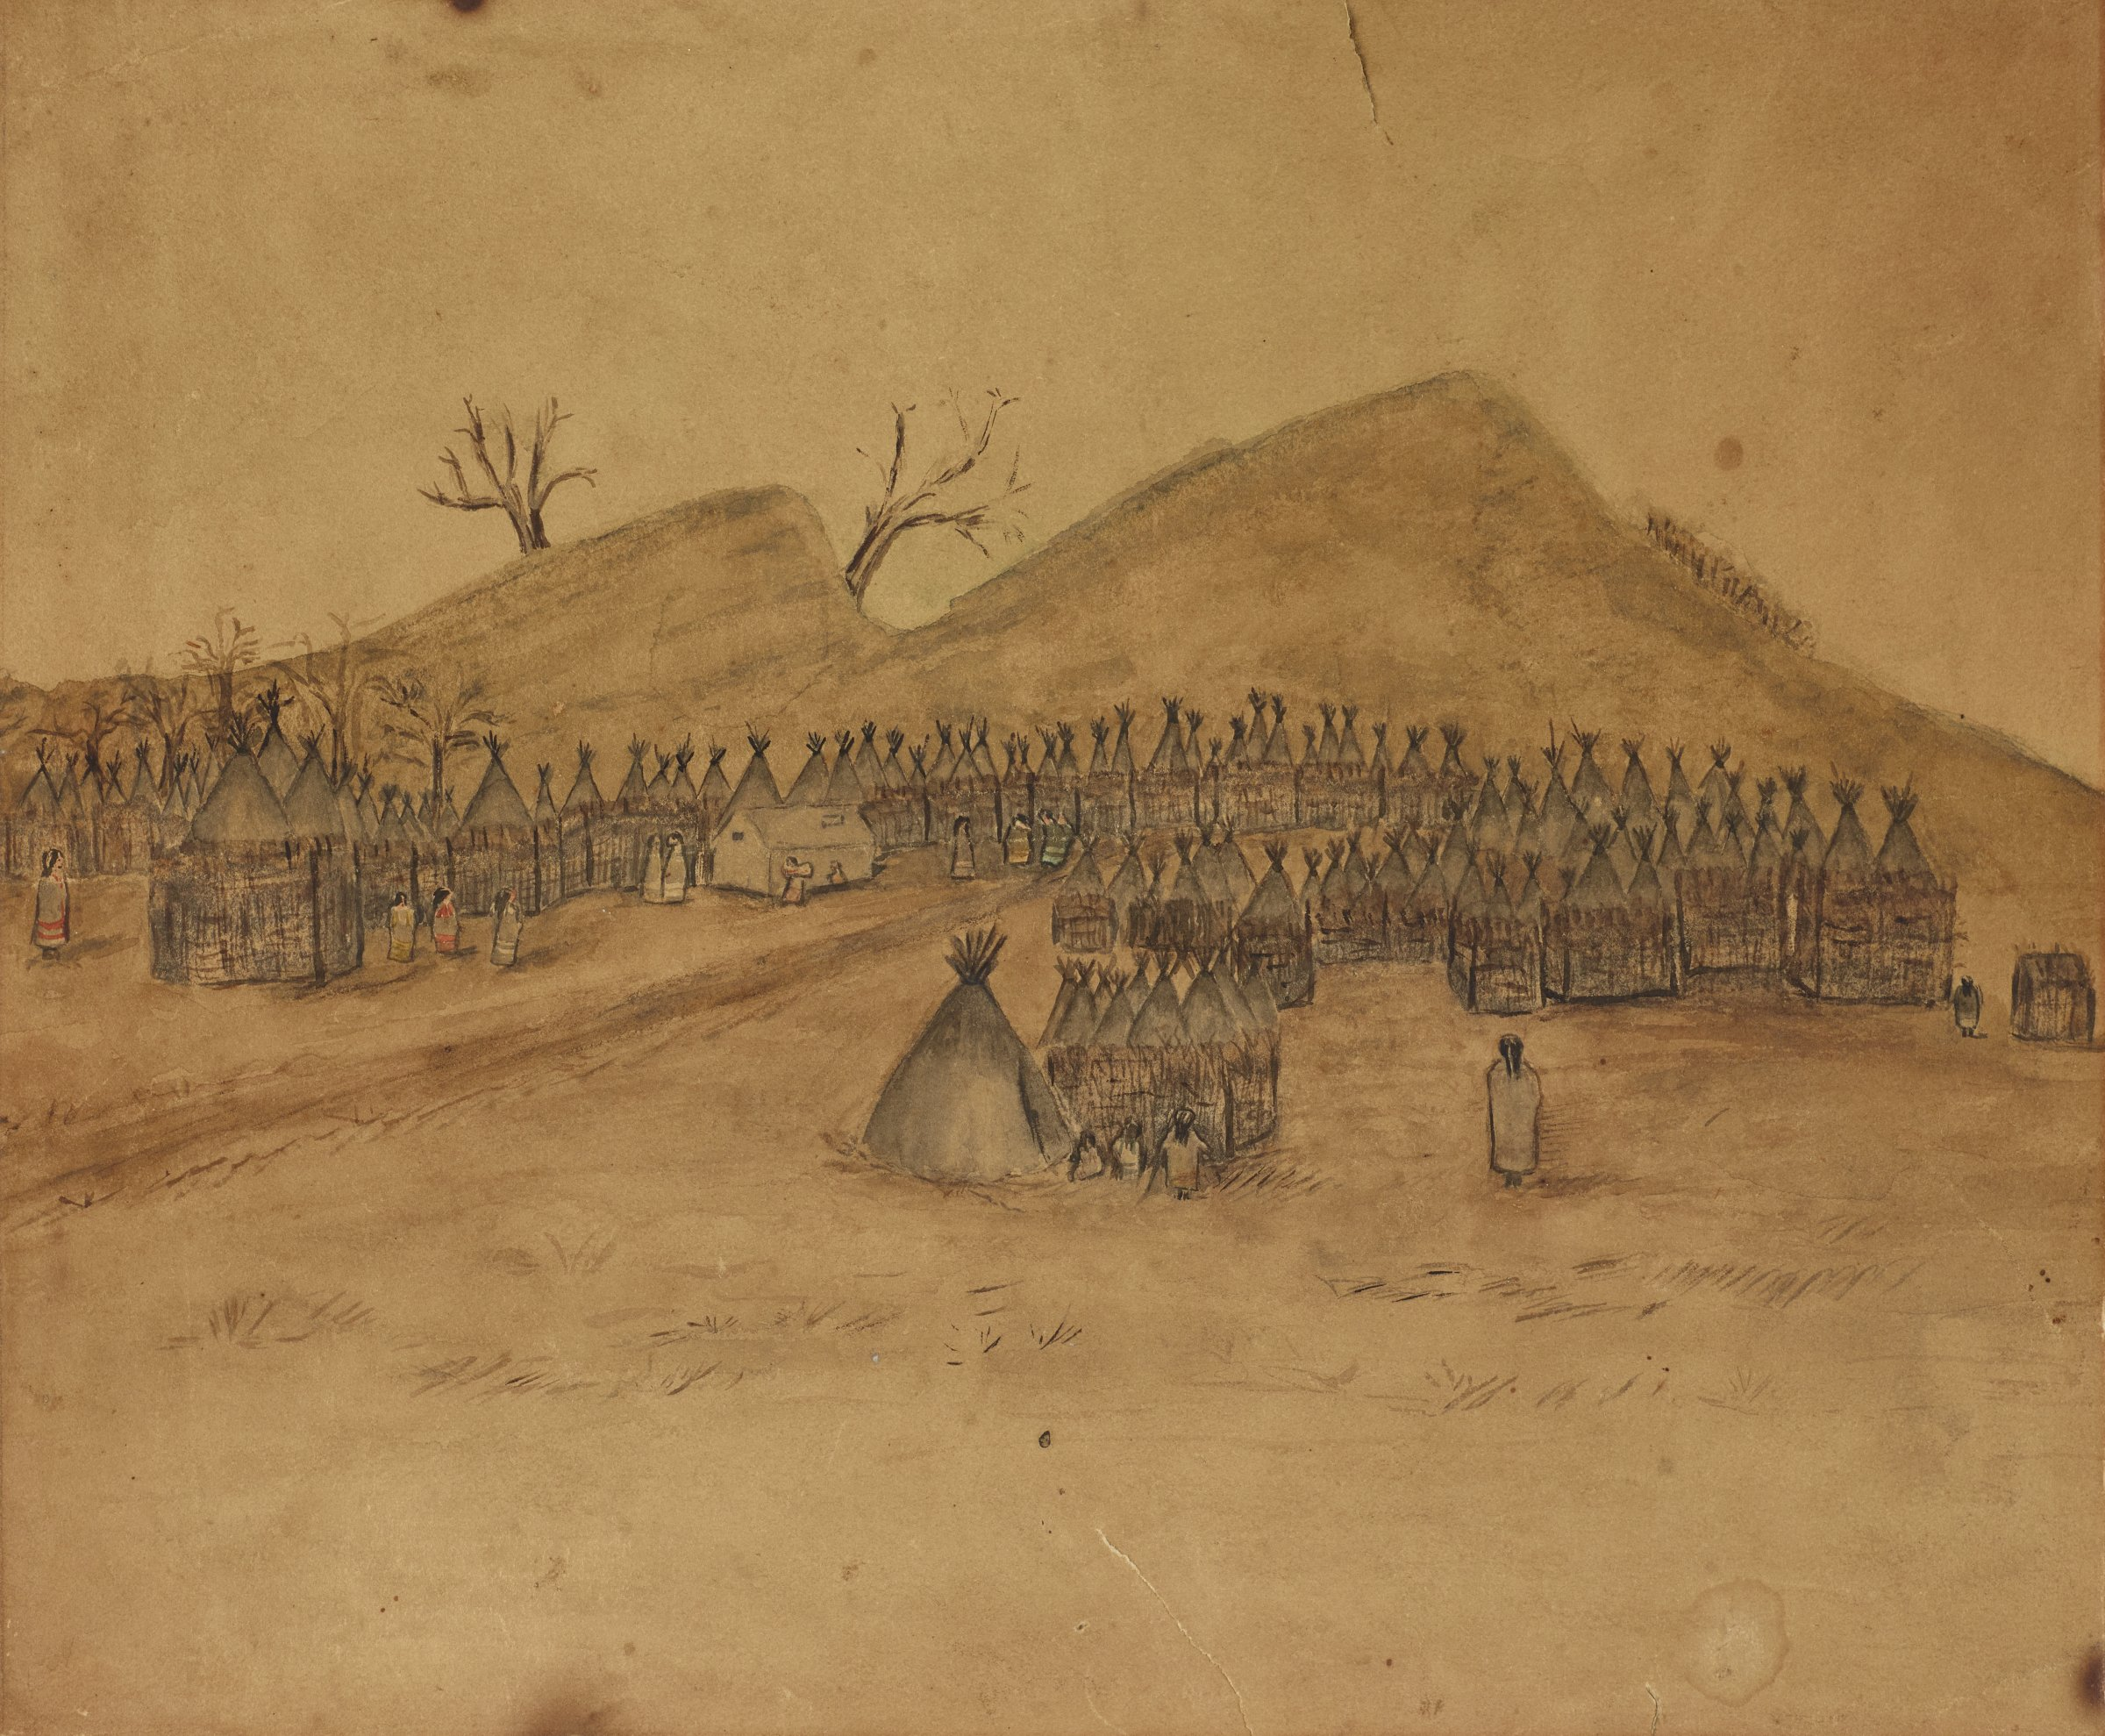 A gathering of Native American housing sits in front of two hills. Figures are dispersed throughout the scene. Two bare trees grow on the left hill.